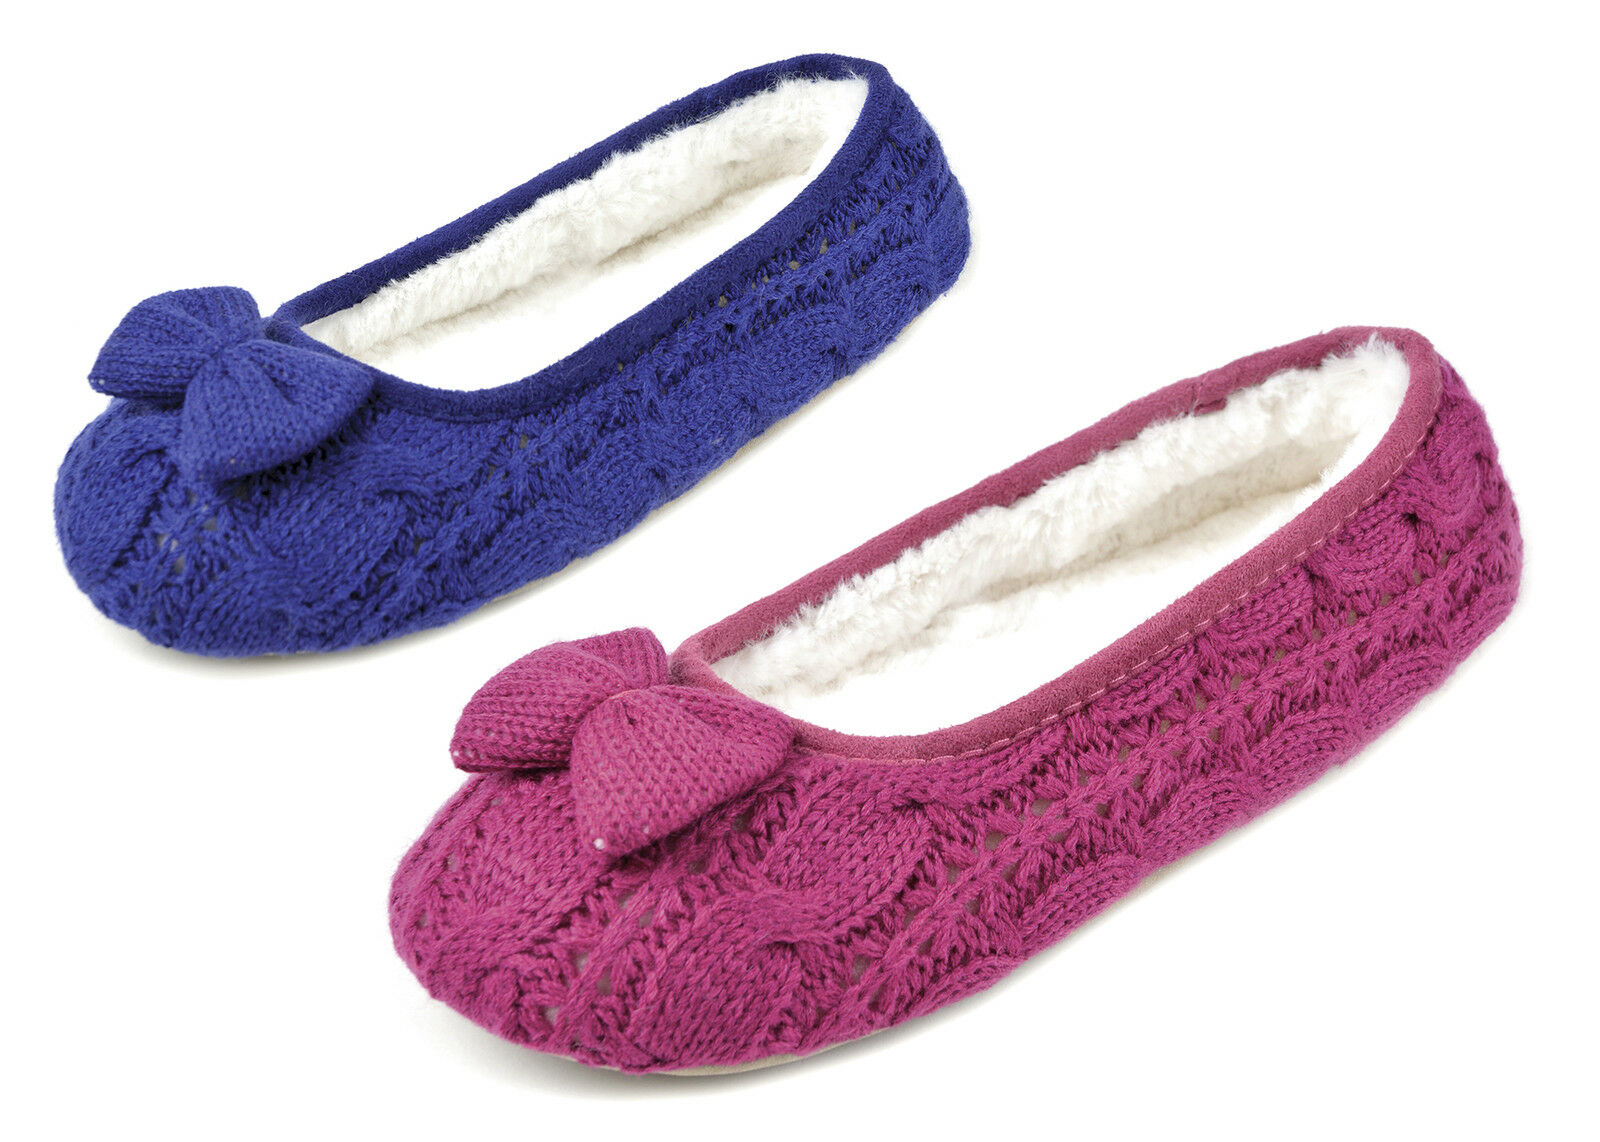 LADIES GIRLS KNITTED BALLERINA BOW FUR SLIPPERS PINK BLUE Size 3/4 5/6 7/8